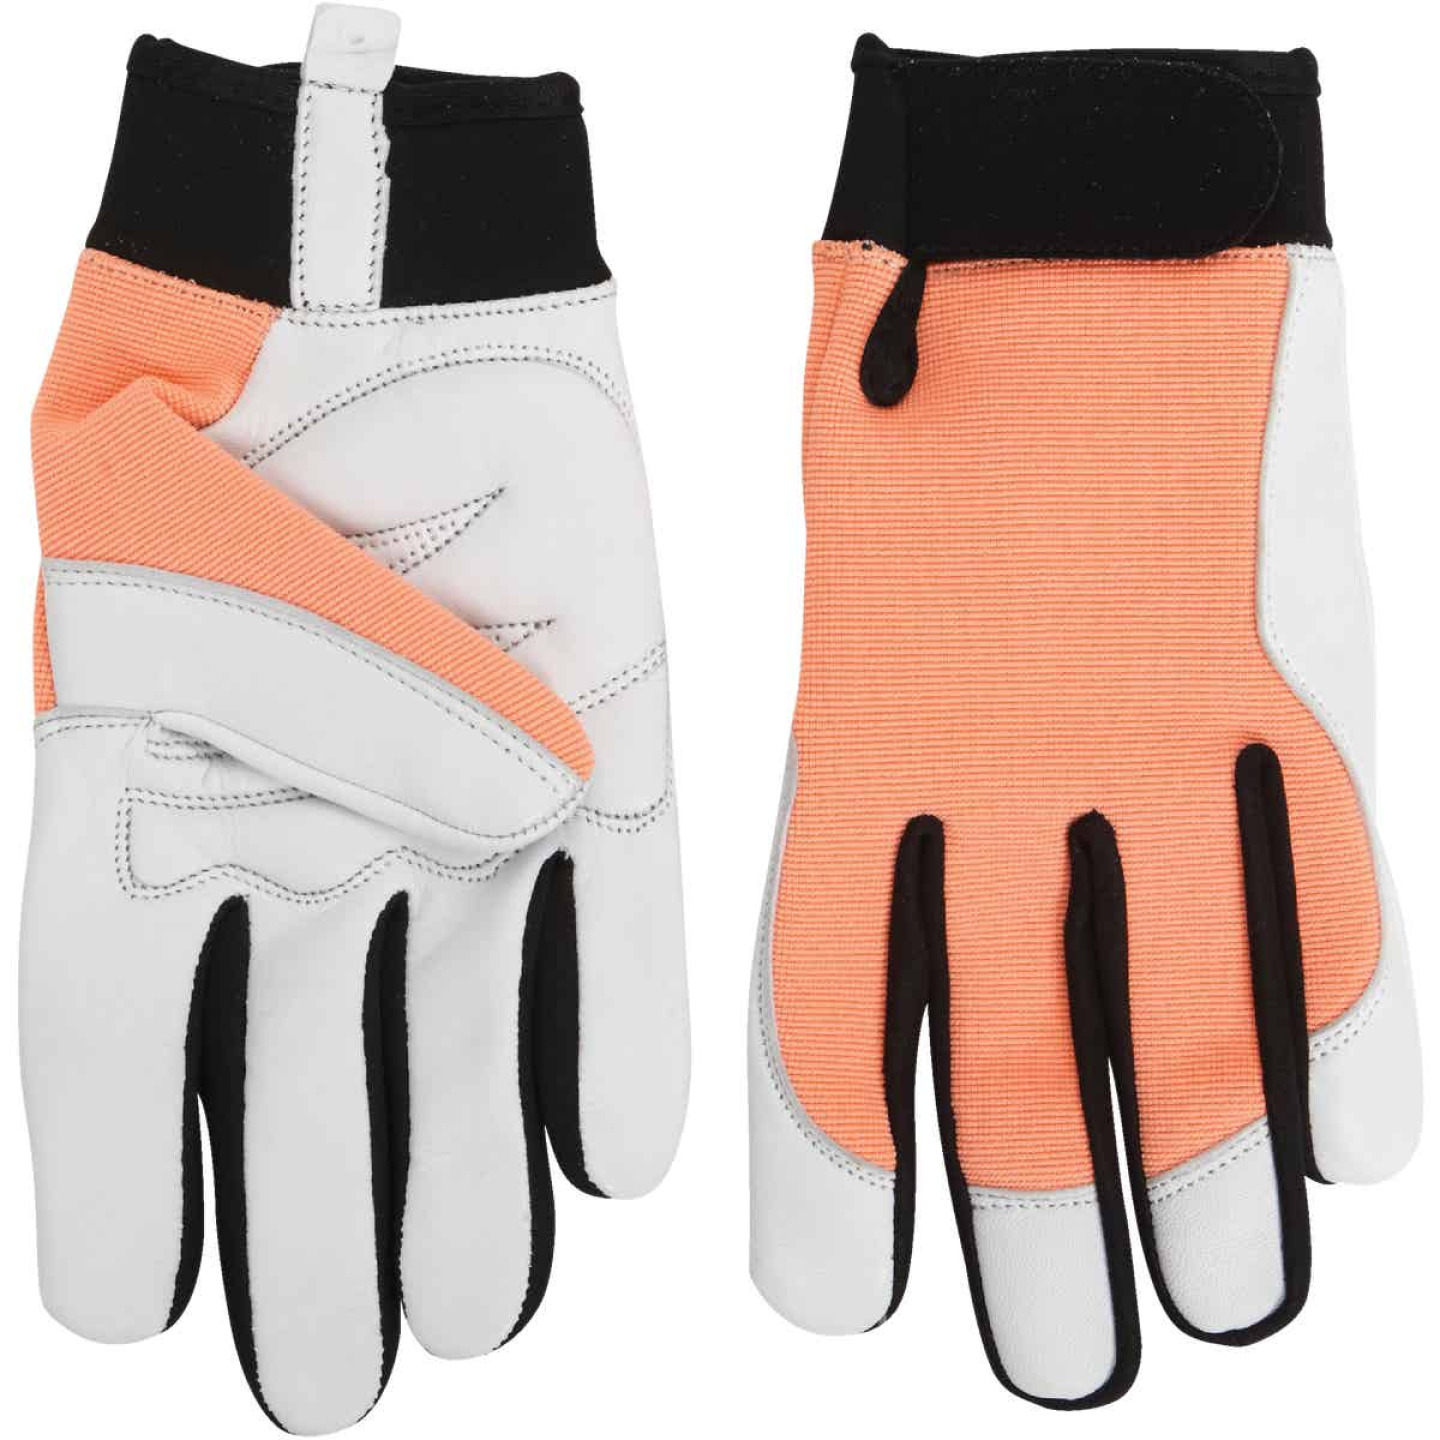 Midwest Gloves & Gear Women's Medium Goatskin Leather Work Glove Image 3